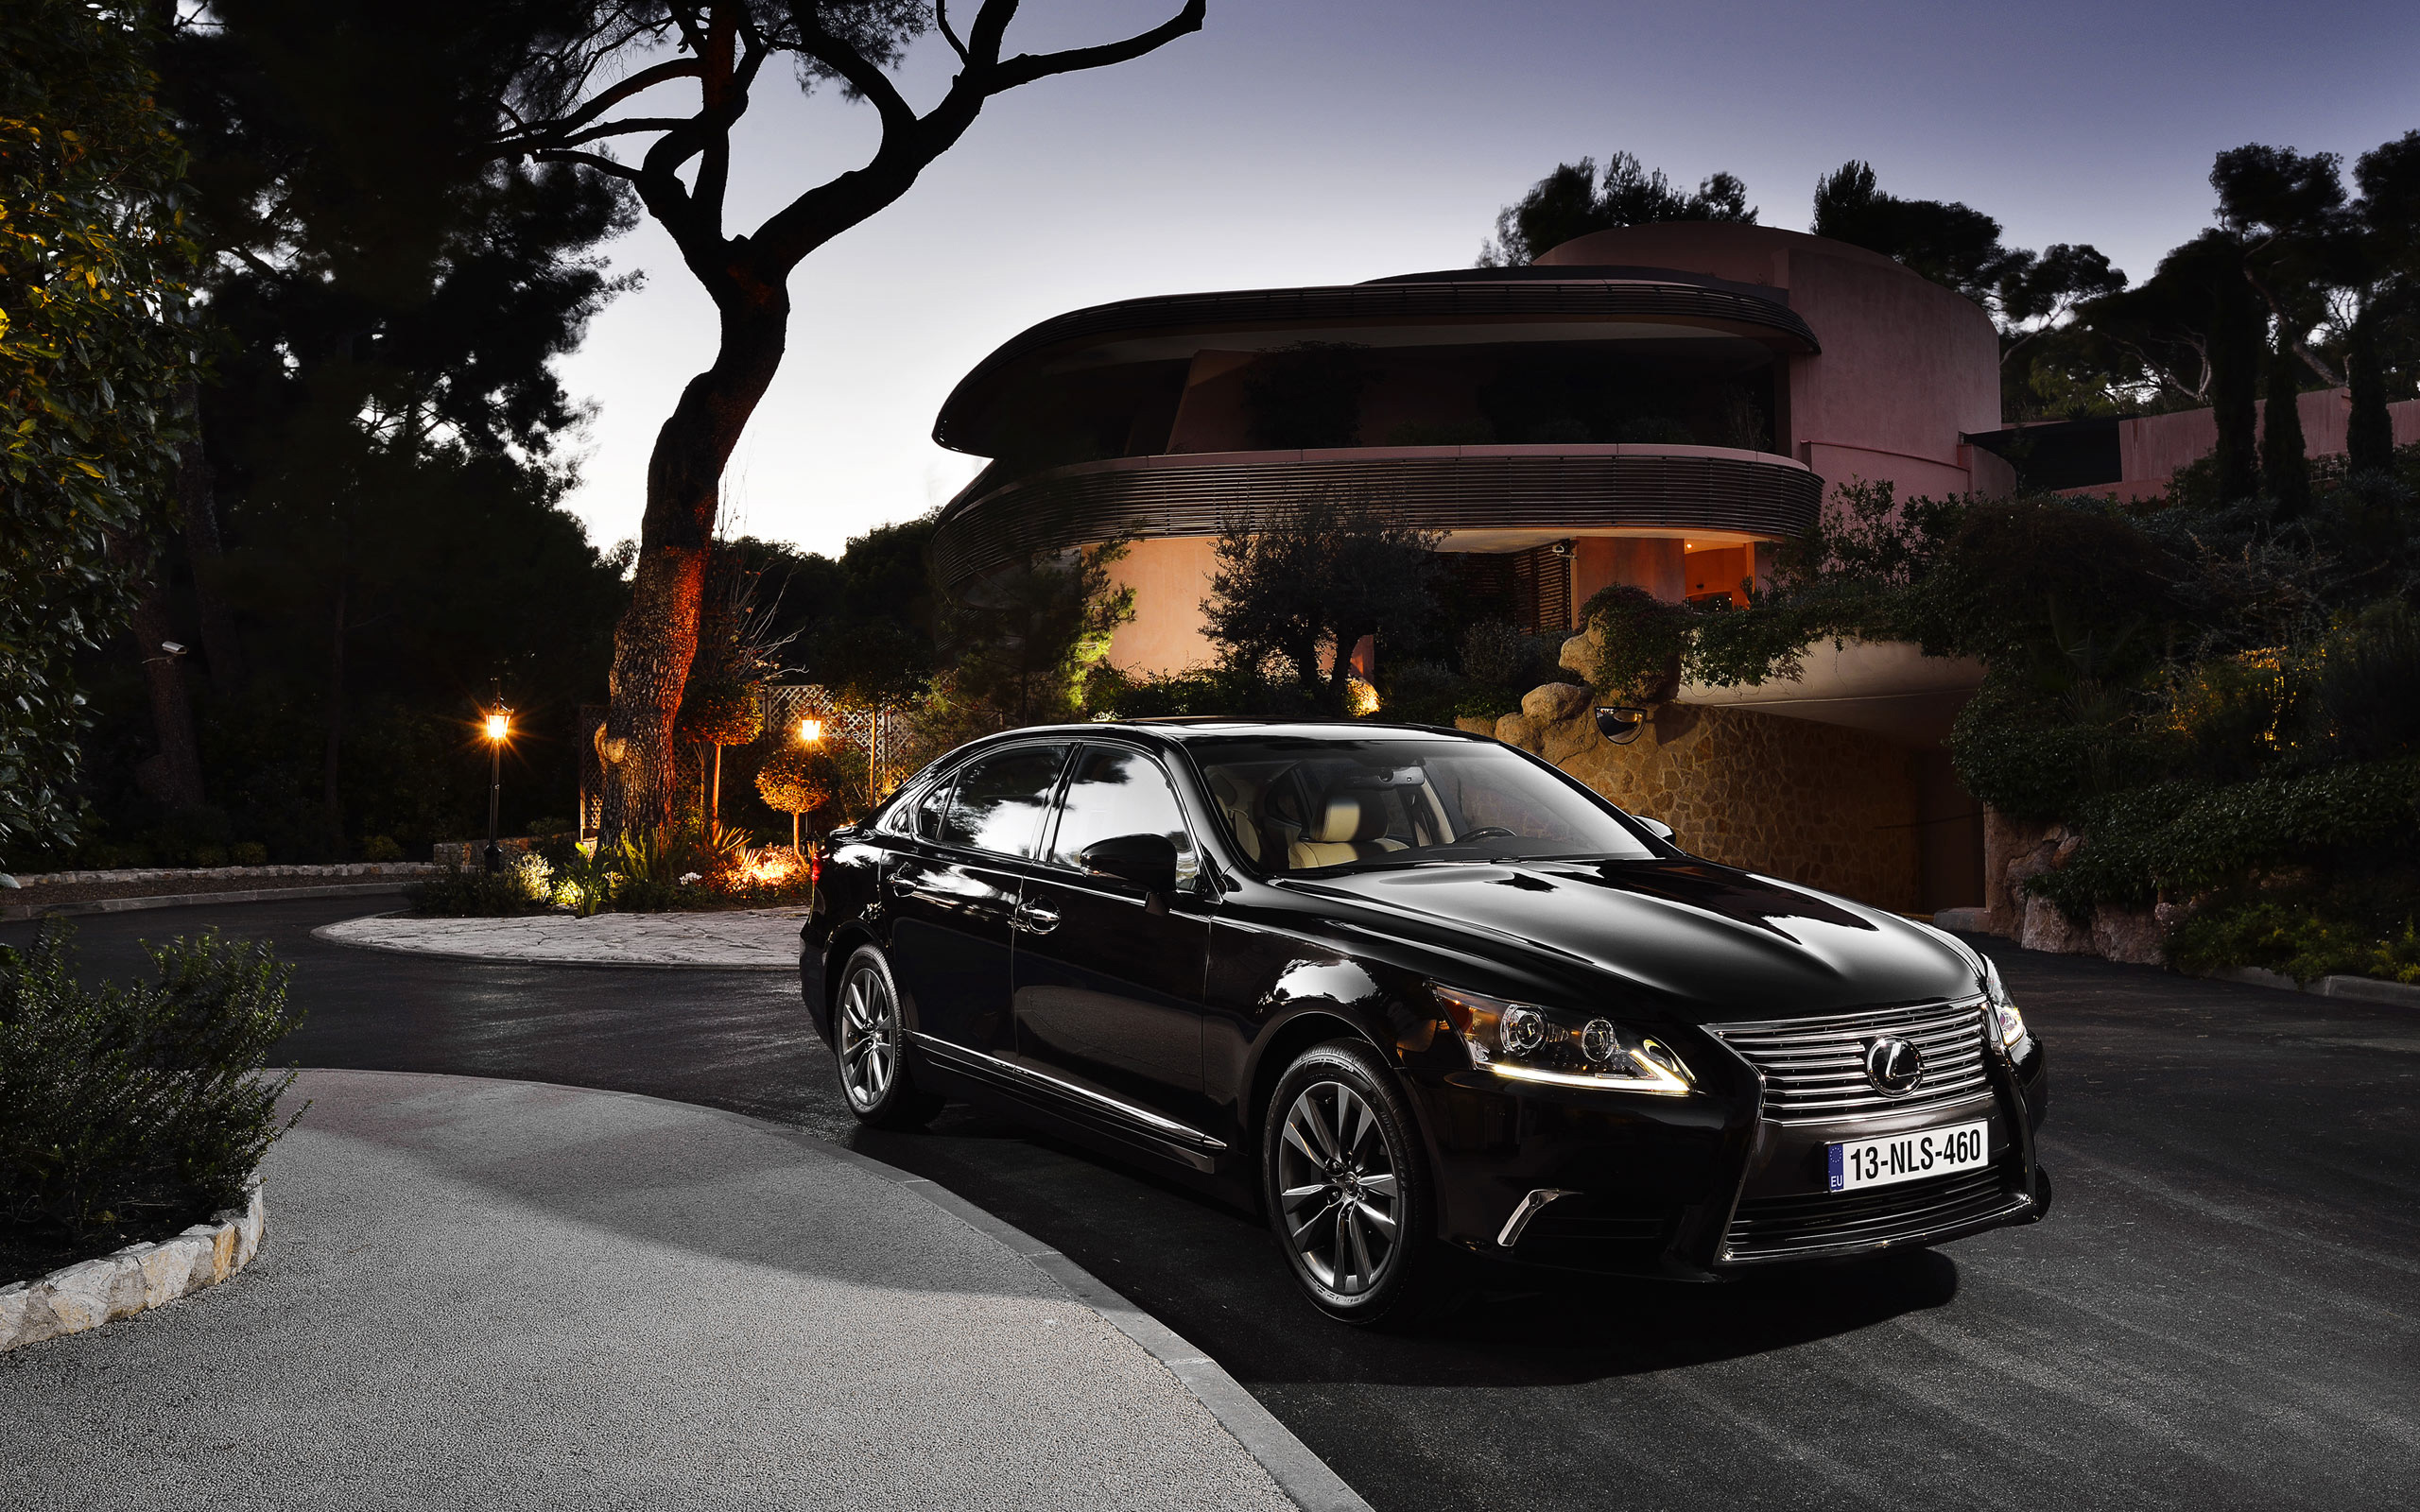 2012 Lexus Ls Eu 2 Wallpaper Hd Car Wallpapers